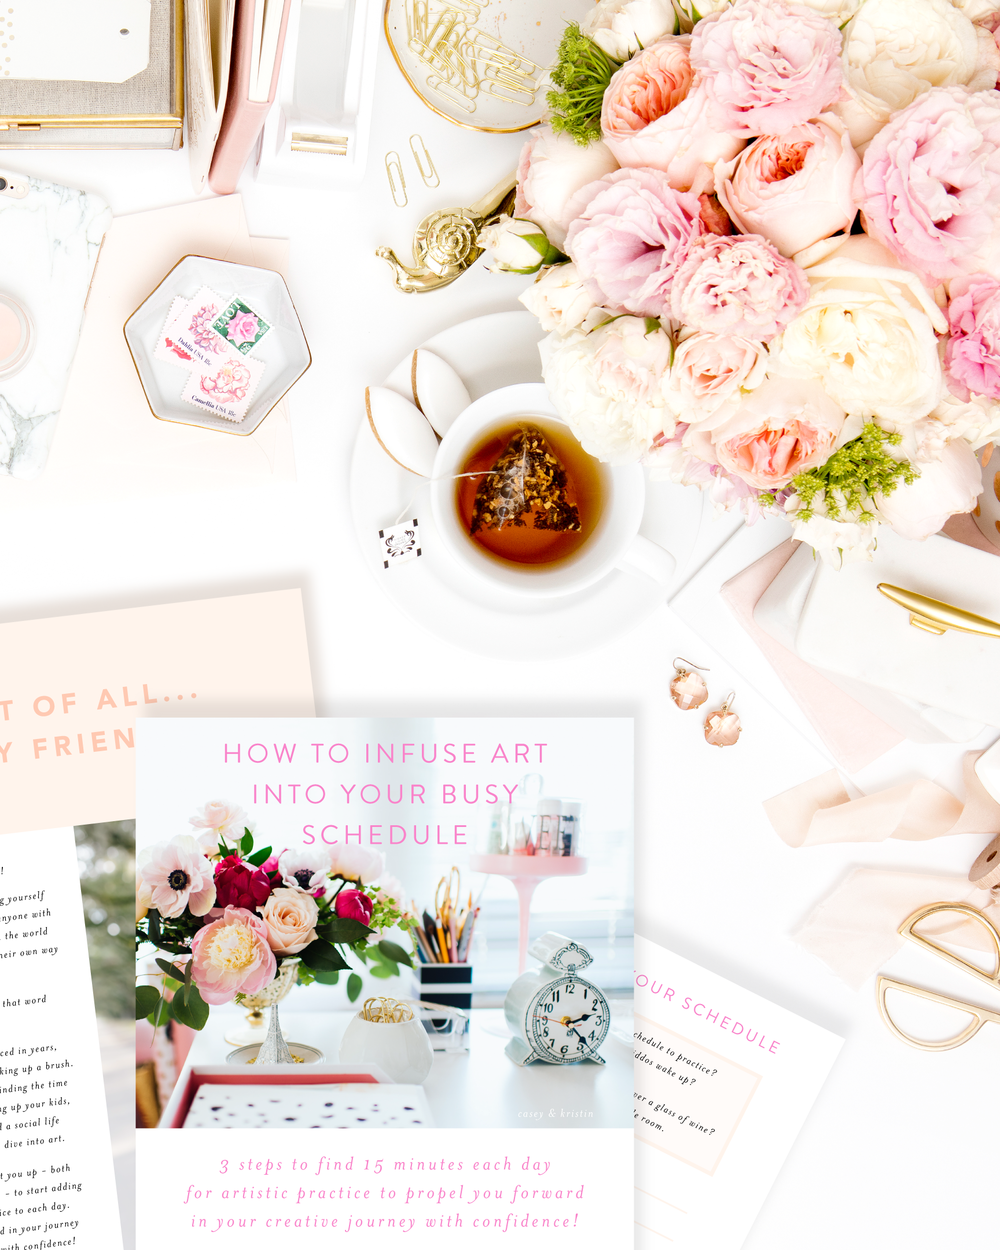 How to infuse art into your busy schedule guide by Simply Jessica Marie | Learn how to practice art on a regular basis! | Photo by SC Stockshop